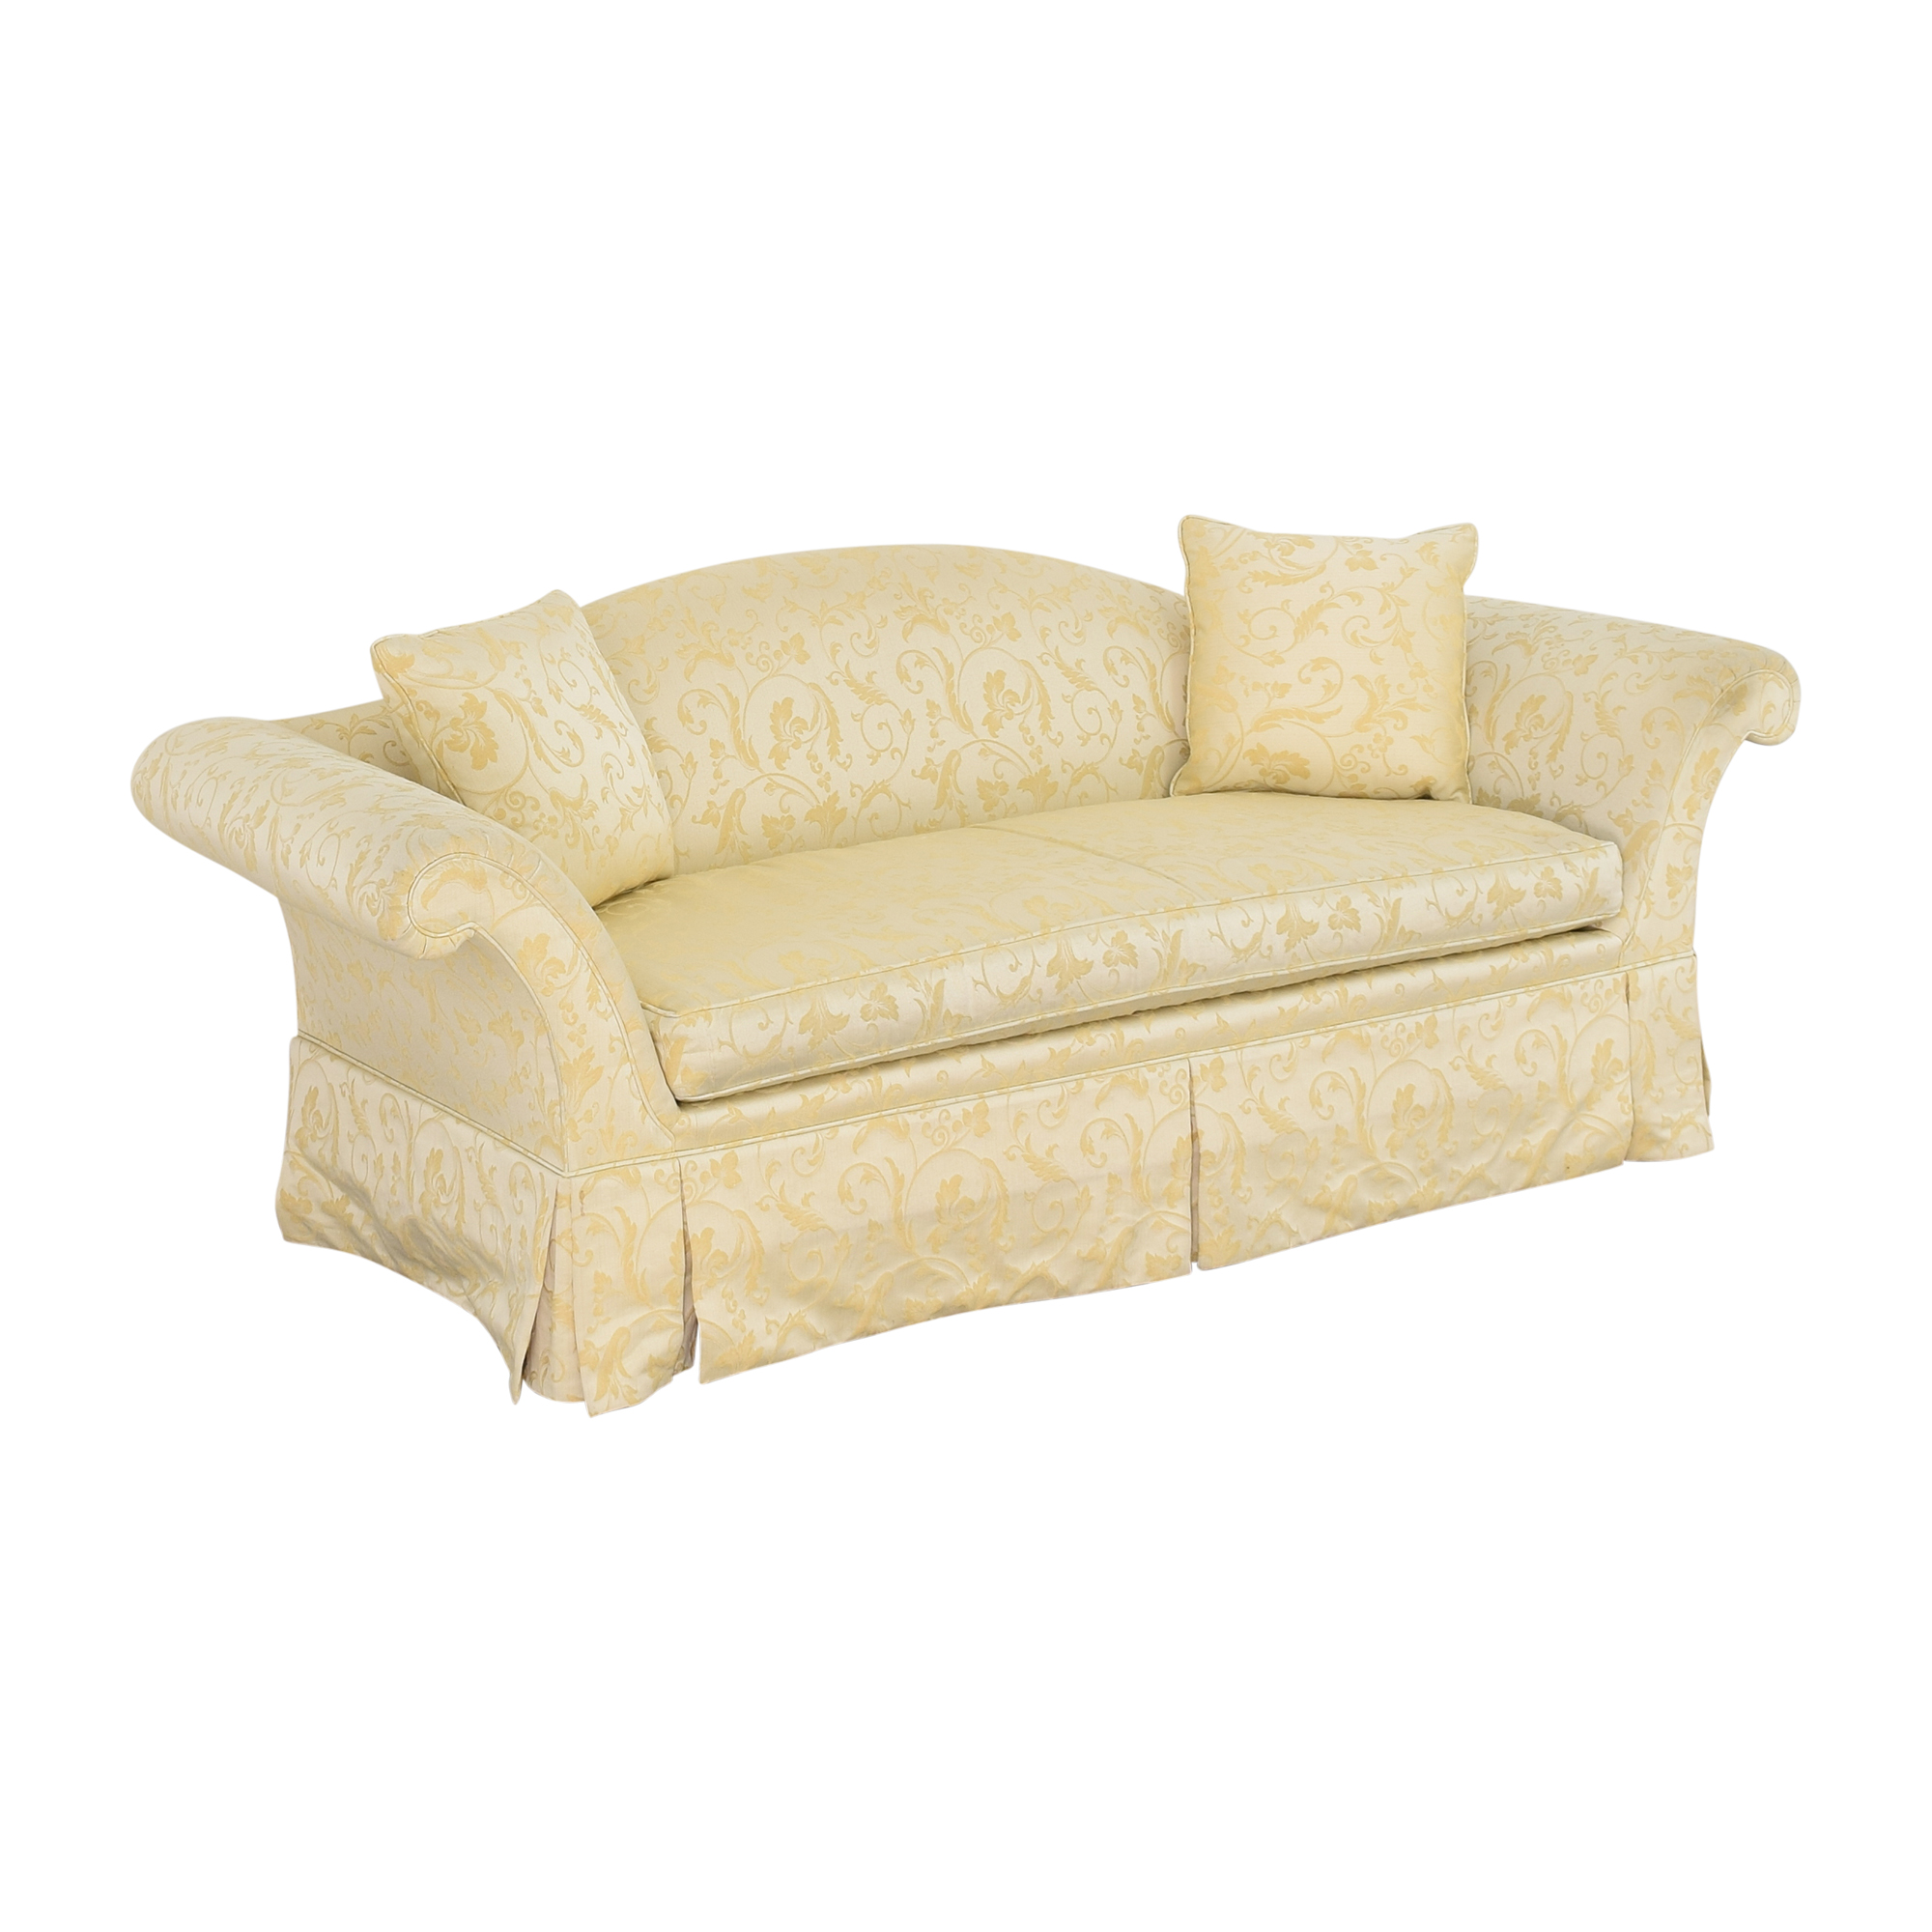 Kindel Kindel Skirted Camelback Sofa on sale